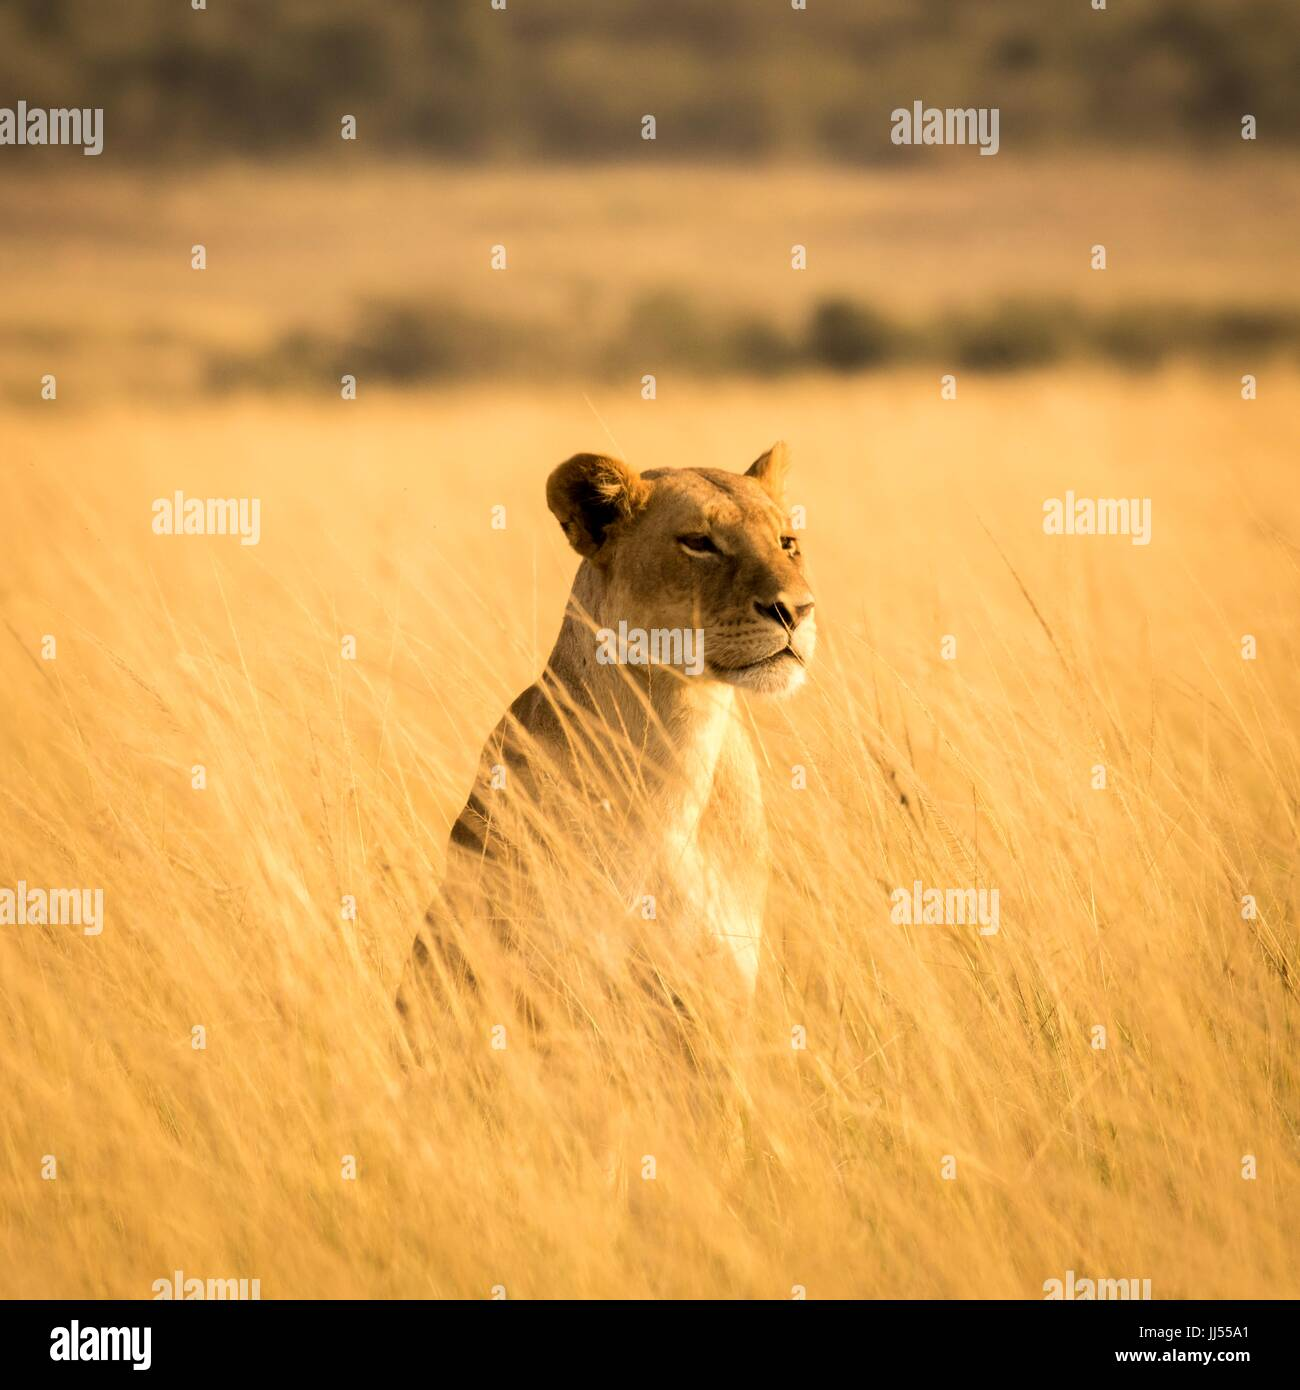 Belle faune Africaine Photo Stock